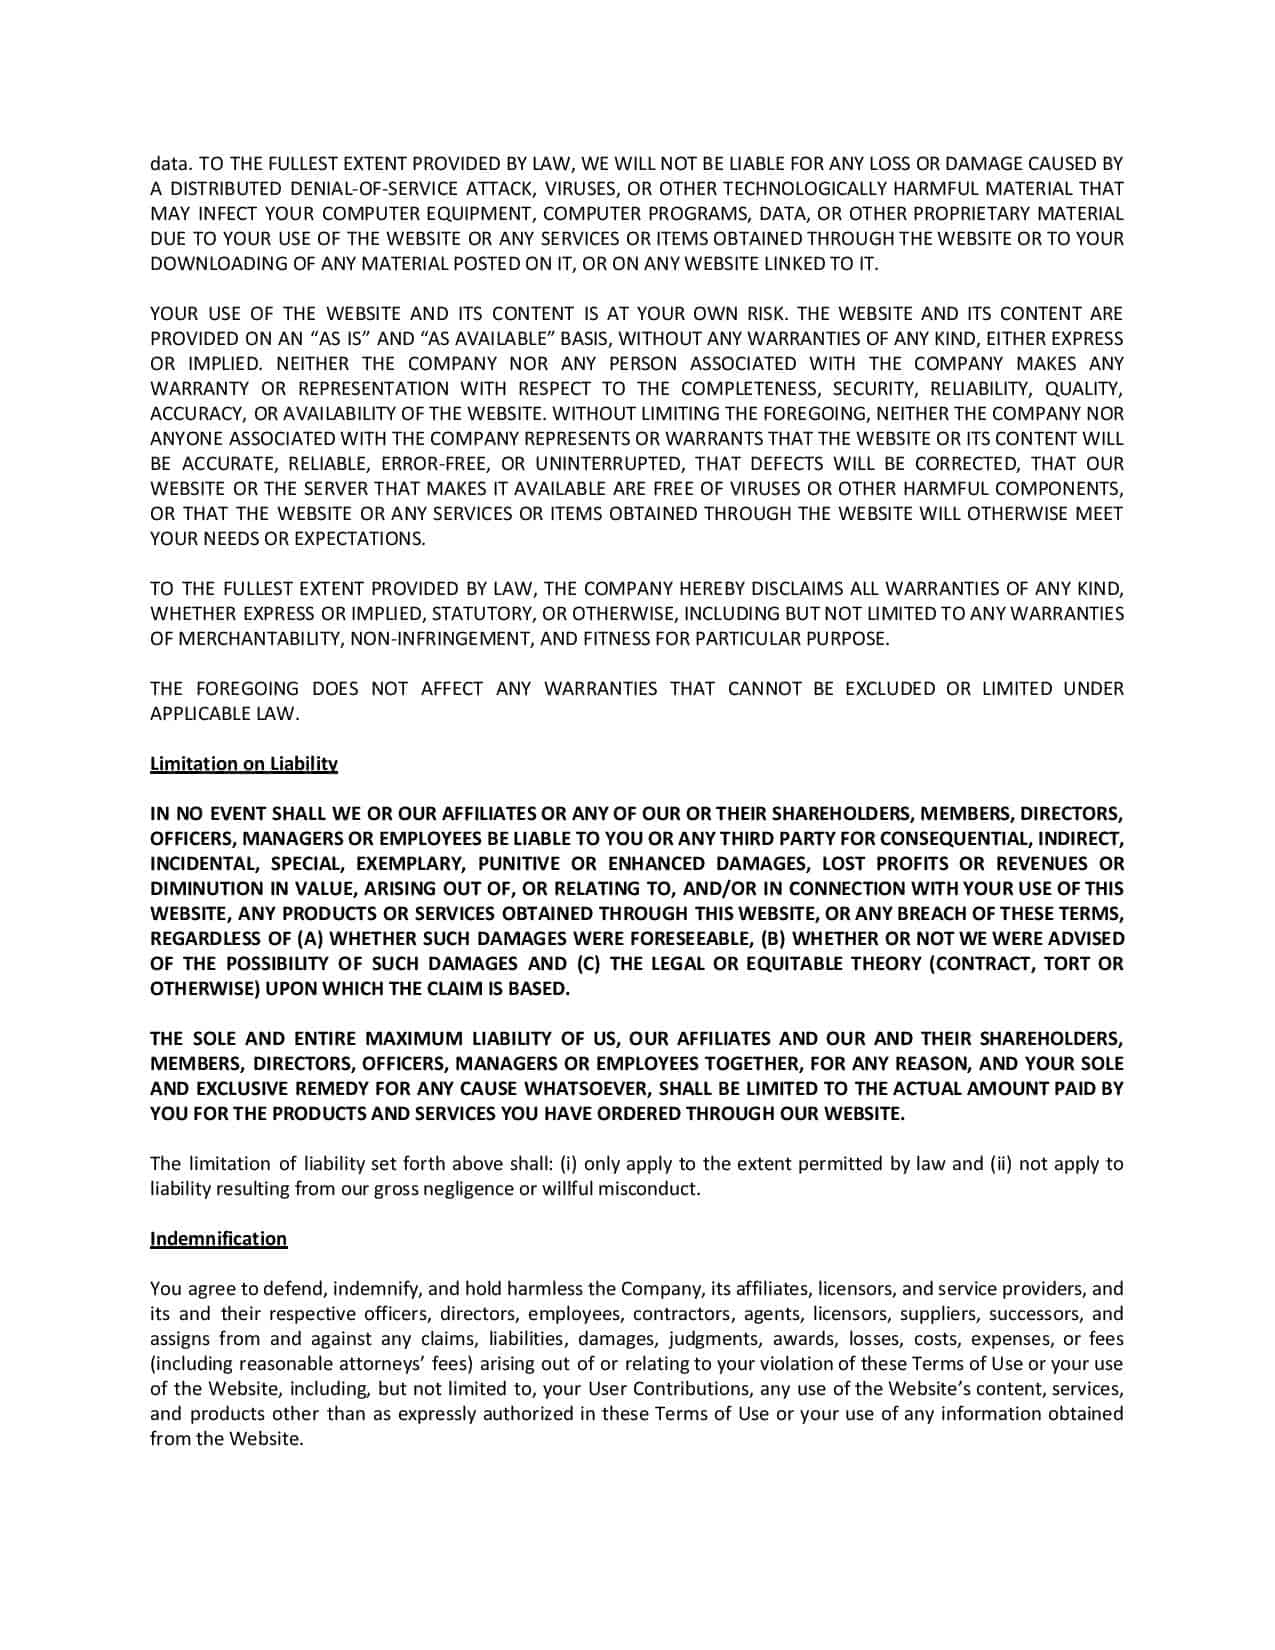 overbrookrehabilitationcenter Terms of Use-page-005